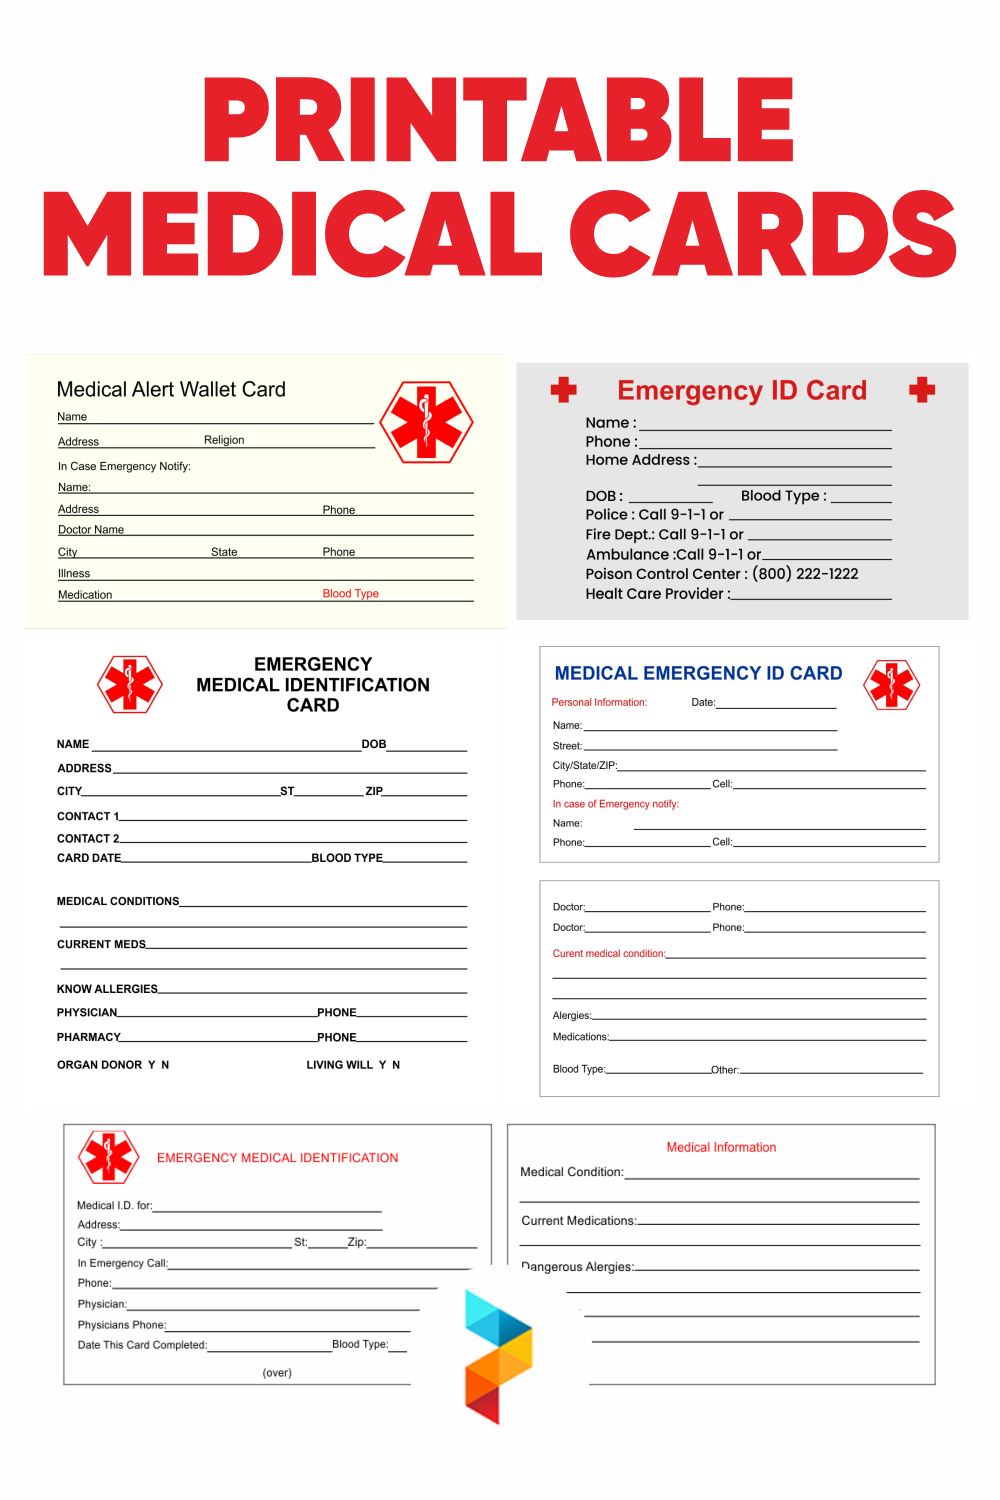 Printable Medical Cards